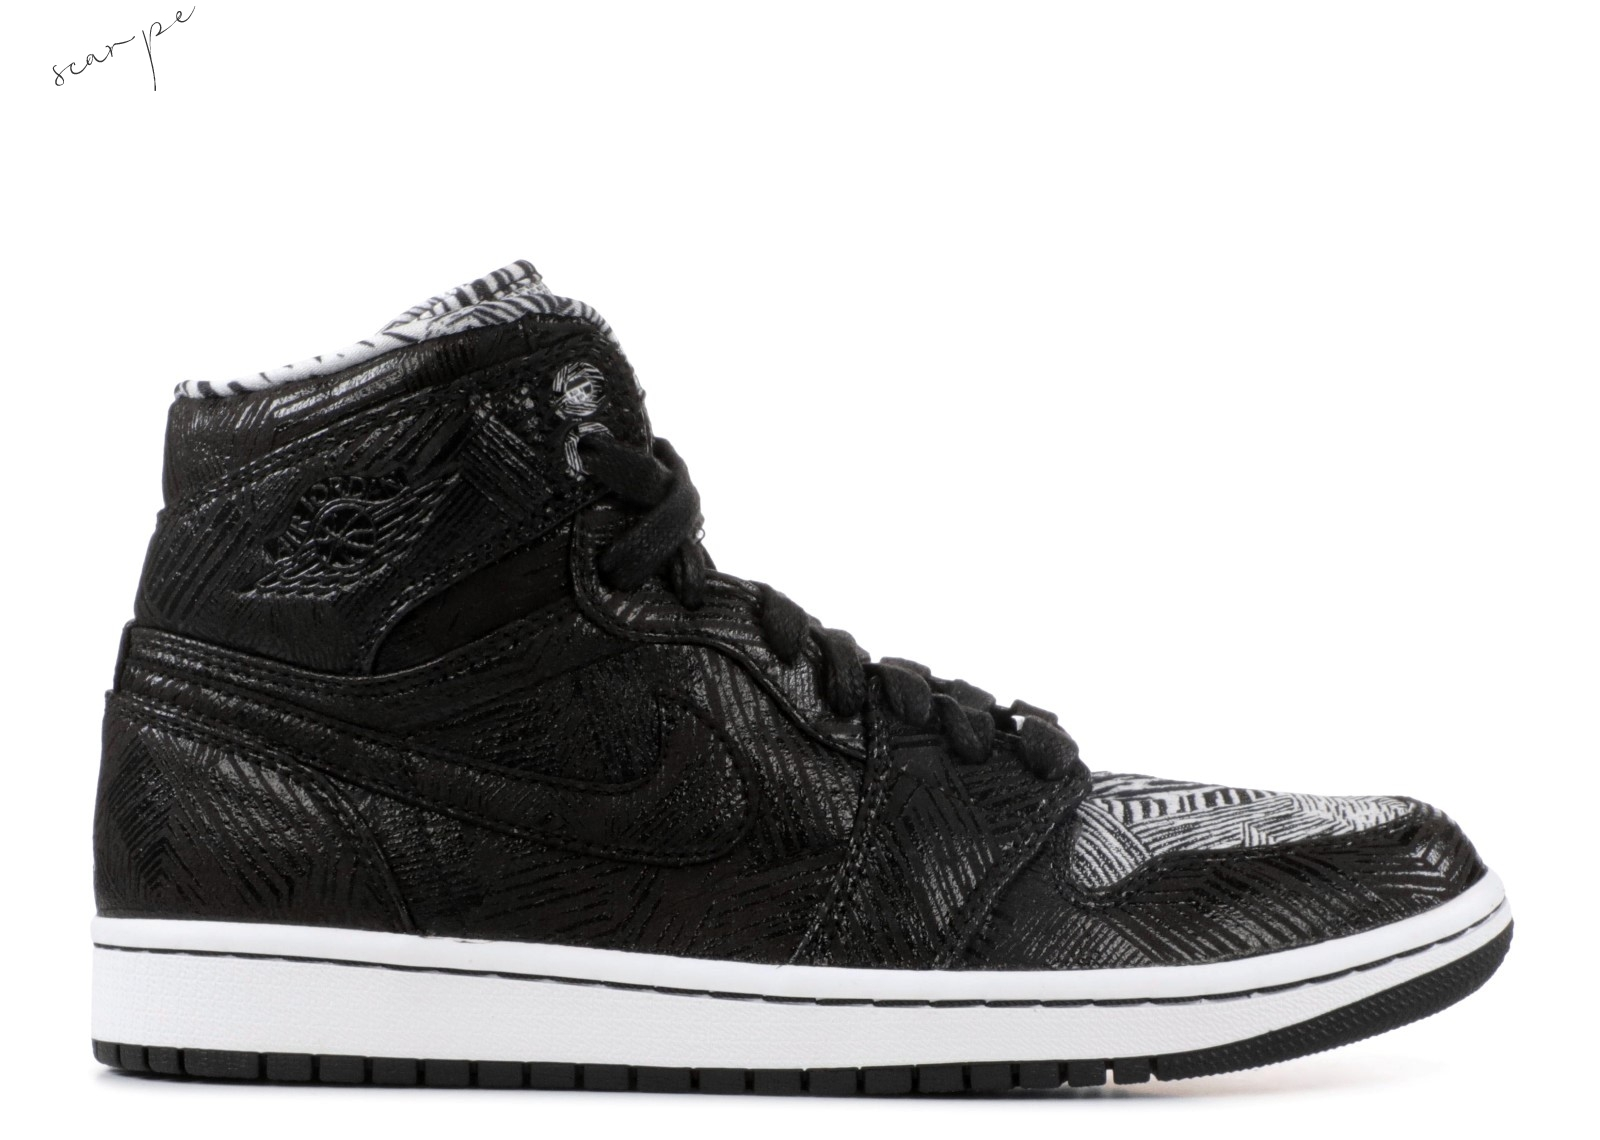 Vendite Air Jordan 1 Retro High Bhm Nero (579591-010) Scarpe Online